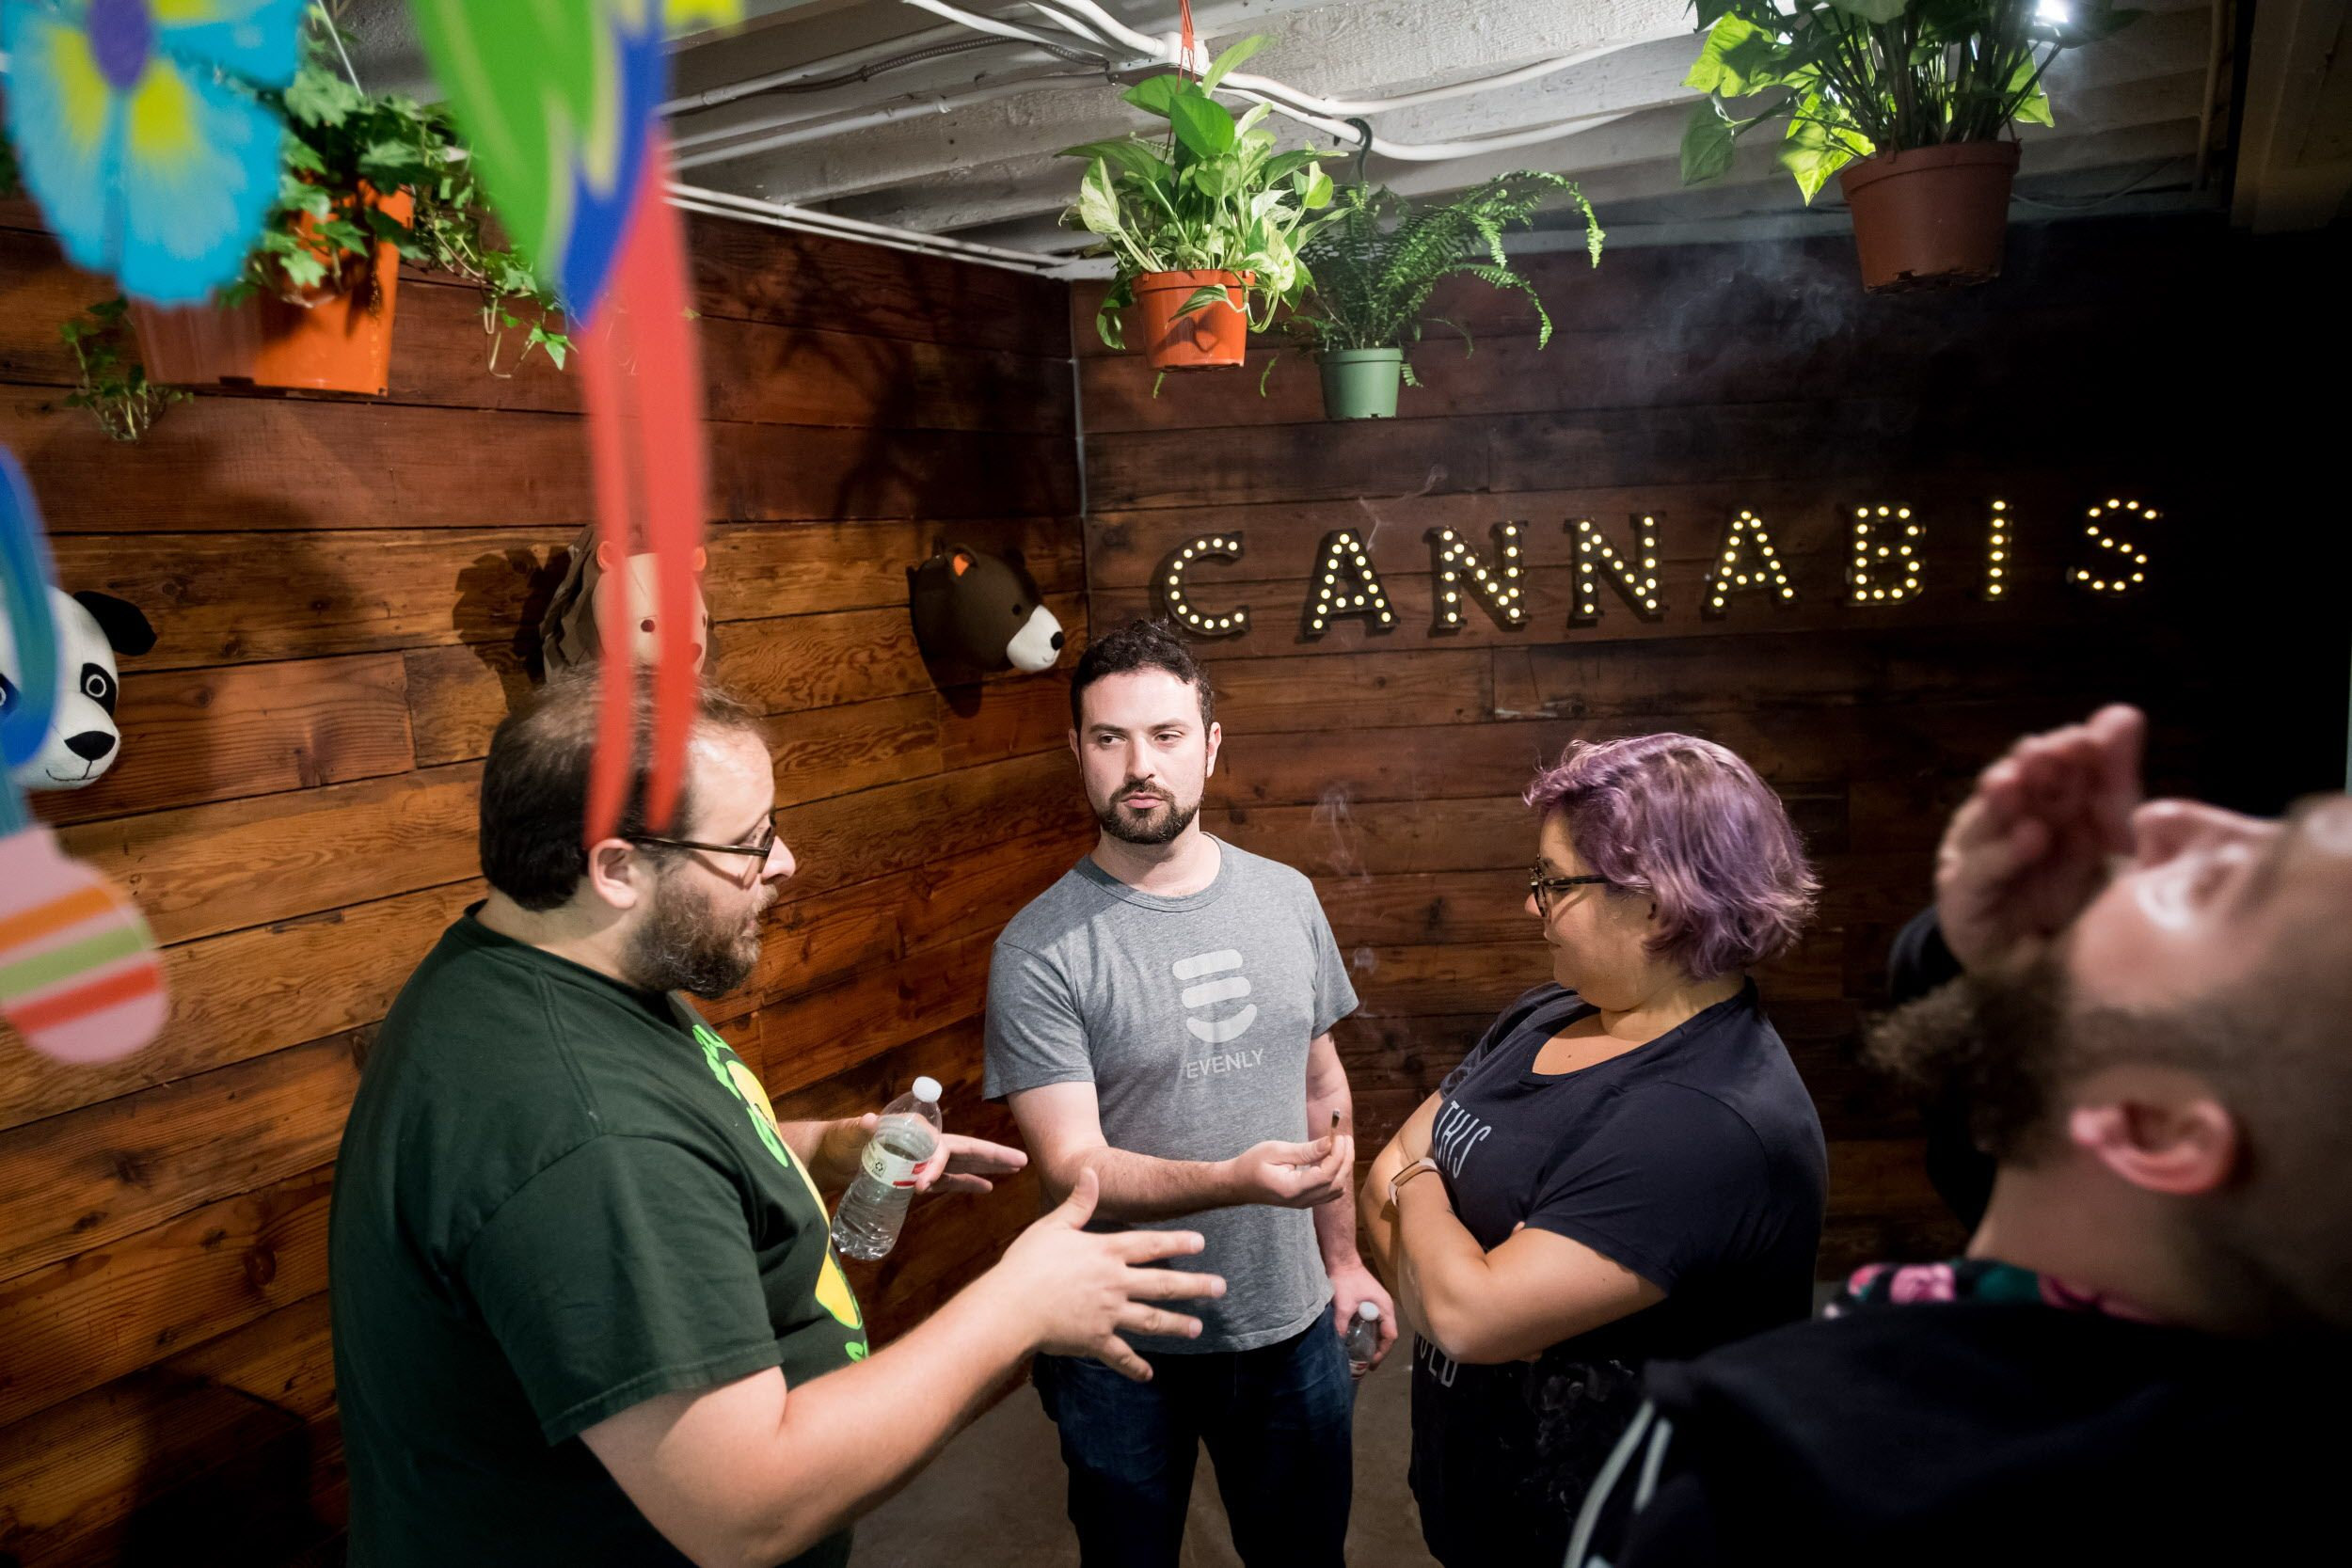 Joe Hankin, center, shares pot with fellow participants at Puff, Pass & POTtery gathering on Wednesday, May 24, 2017, in Oakland, Calif.